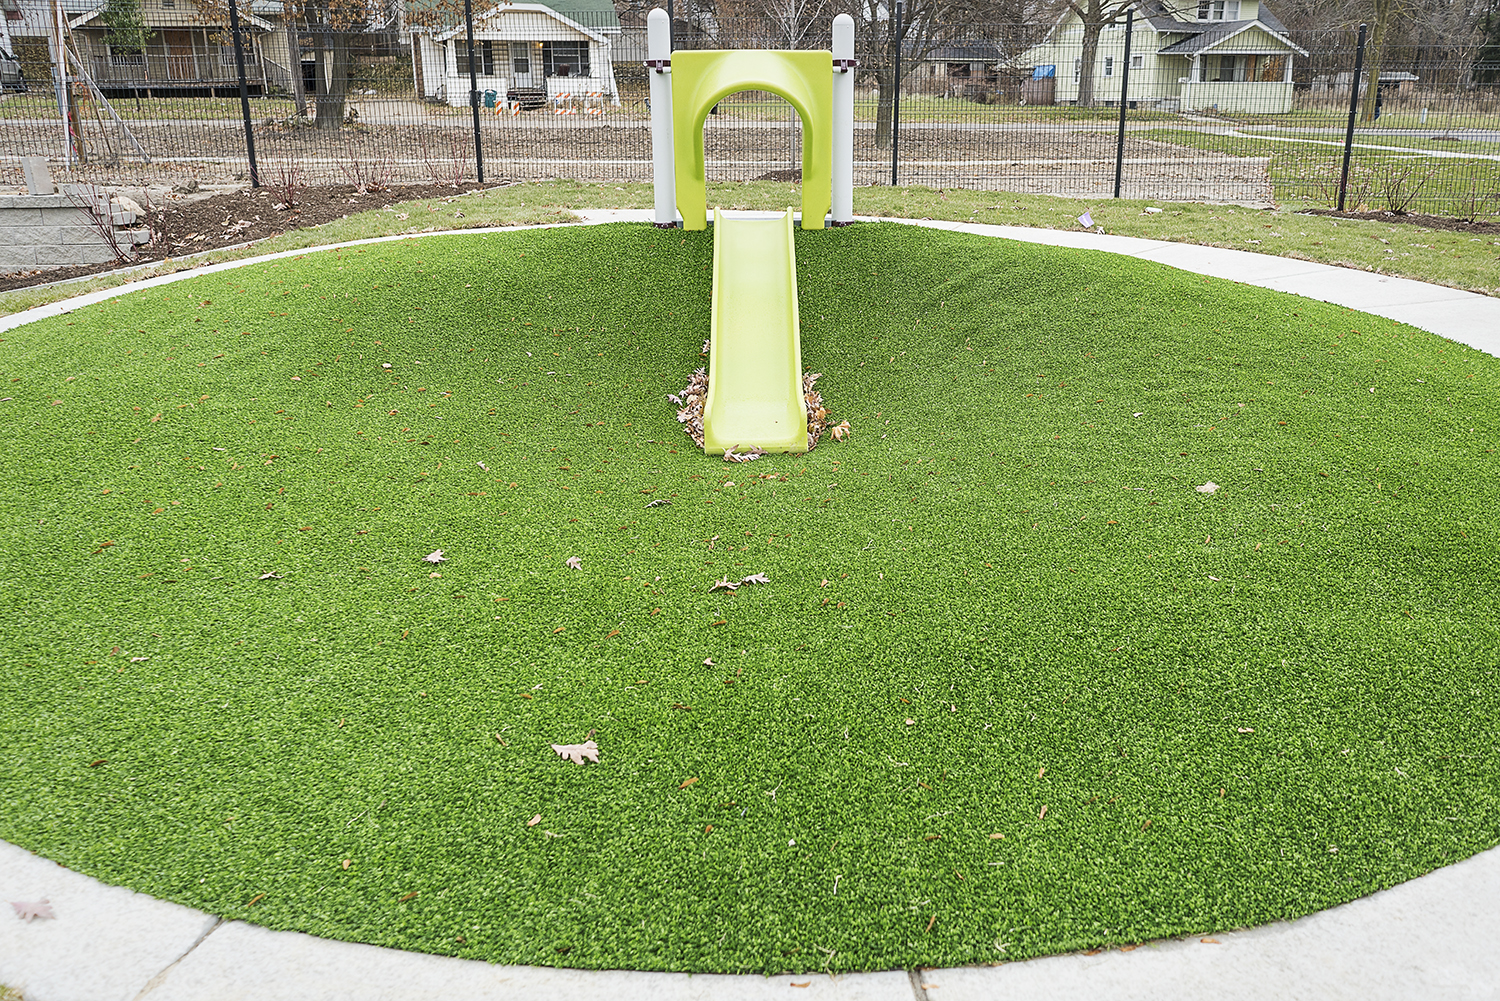 Flint, MI - Tuesday, November 21, 2017: A small slide drops down into a lush field of green grass outside of the new Educare Center in Flint.